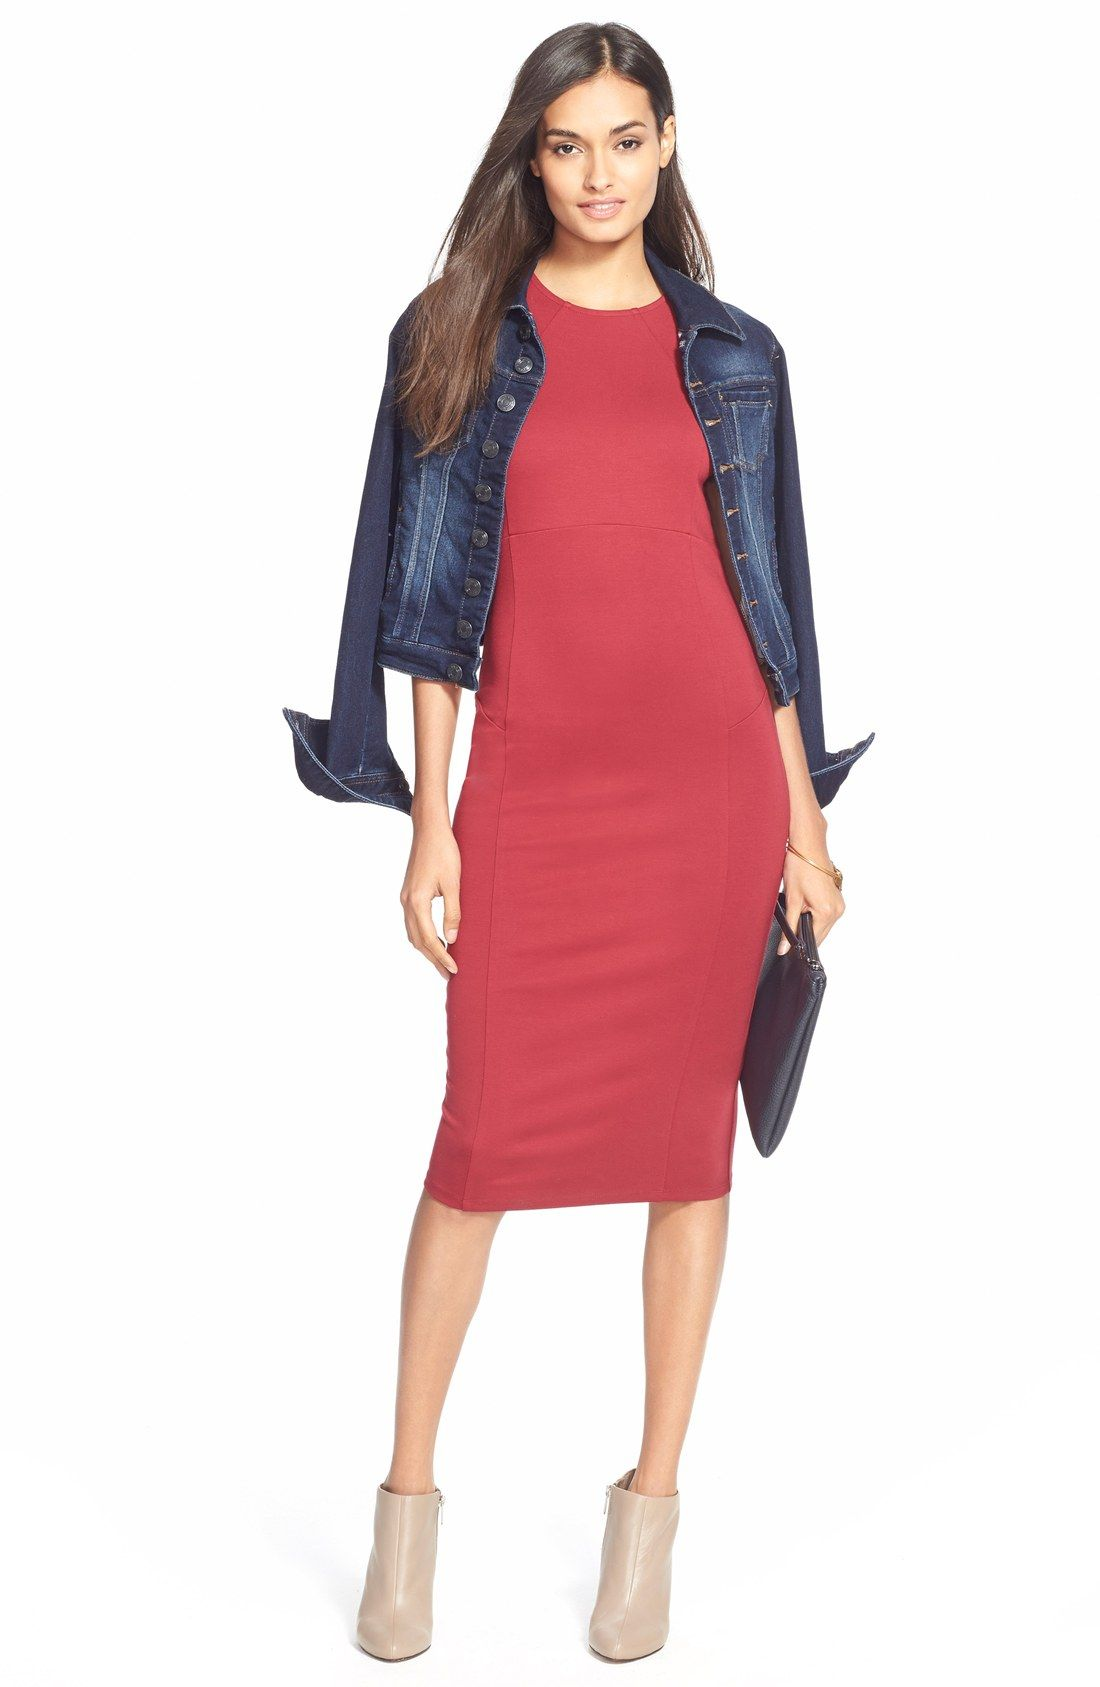 Jag Jeans 'Savannah' Knit Denim Jacket over red dress and high ...